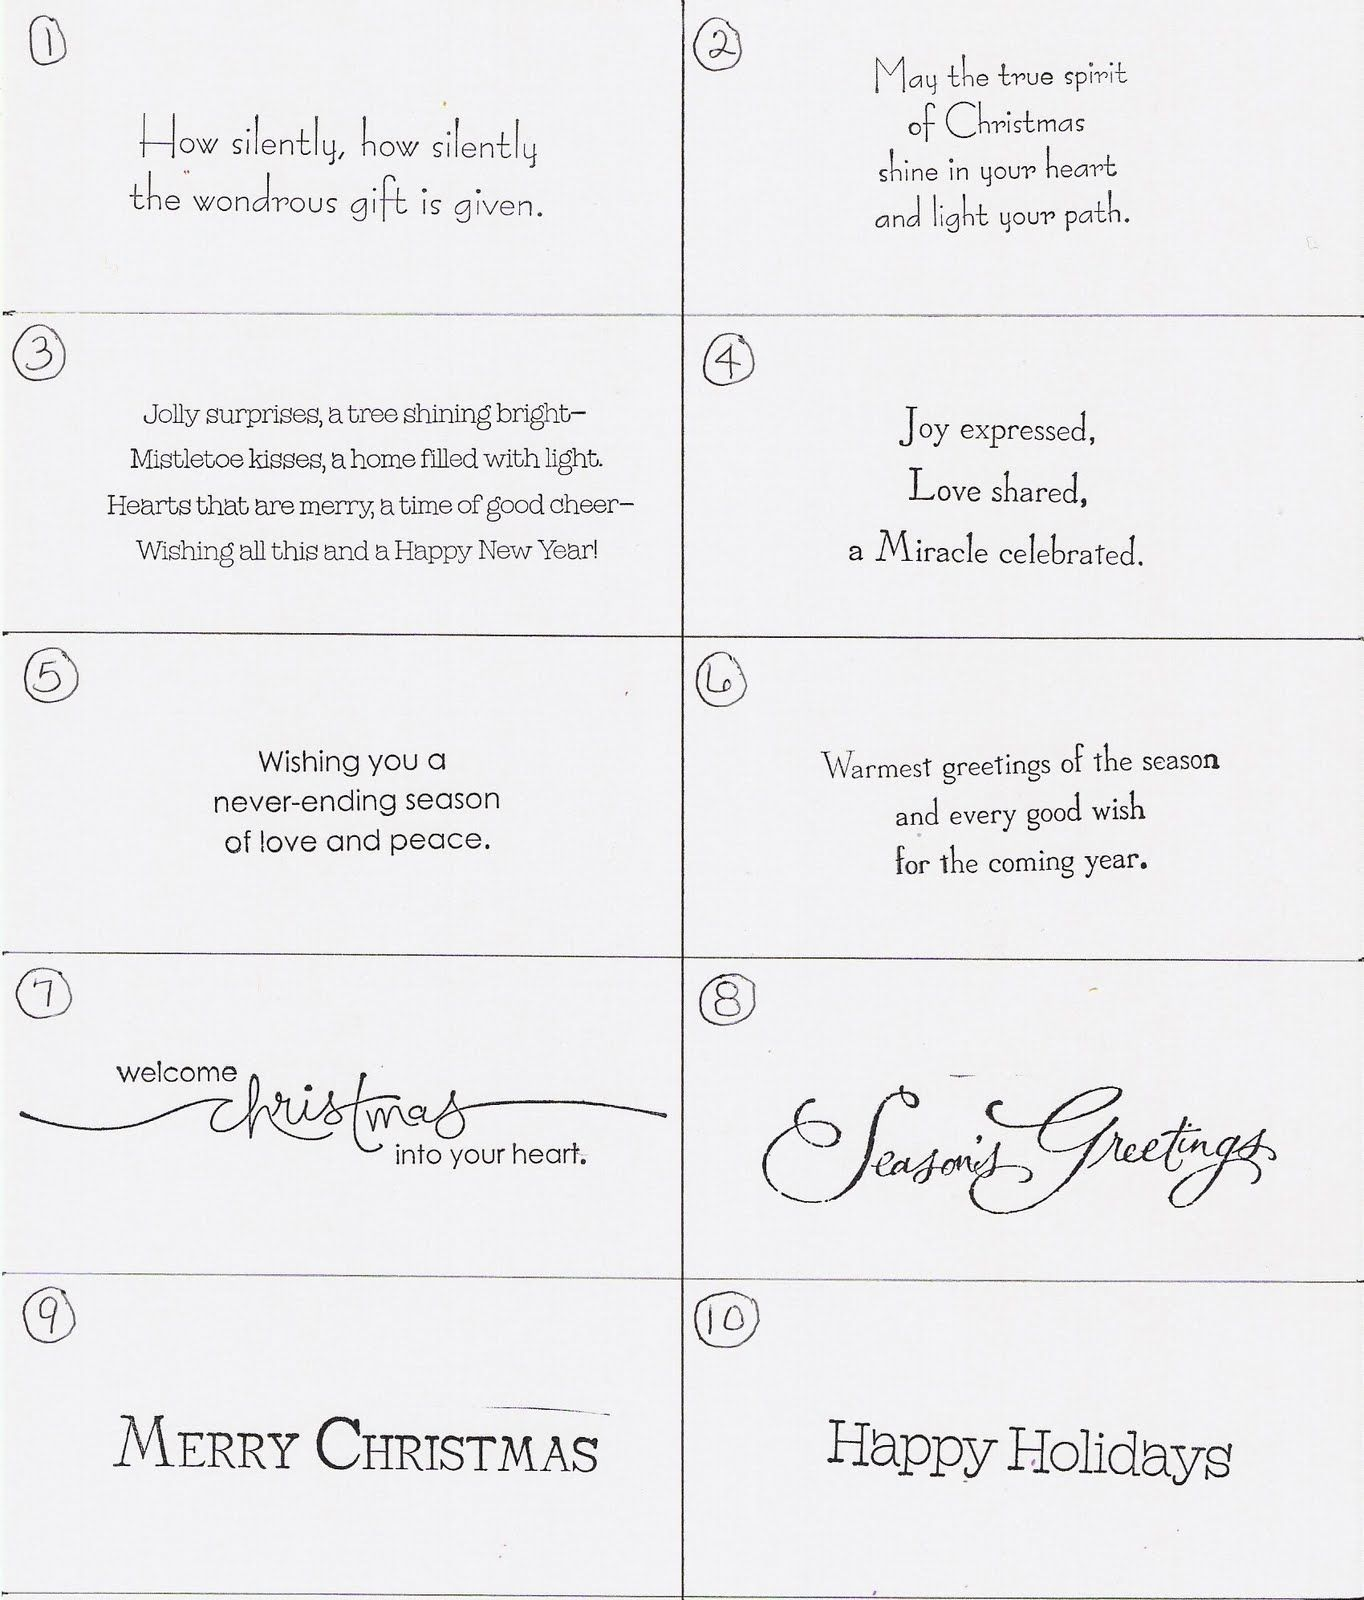 Best Christmas Messages Top Christmas Verses 12 Days Of Christmas